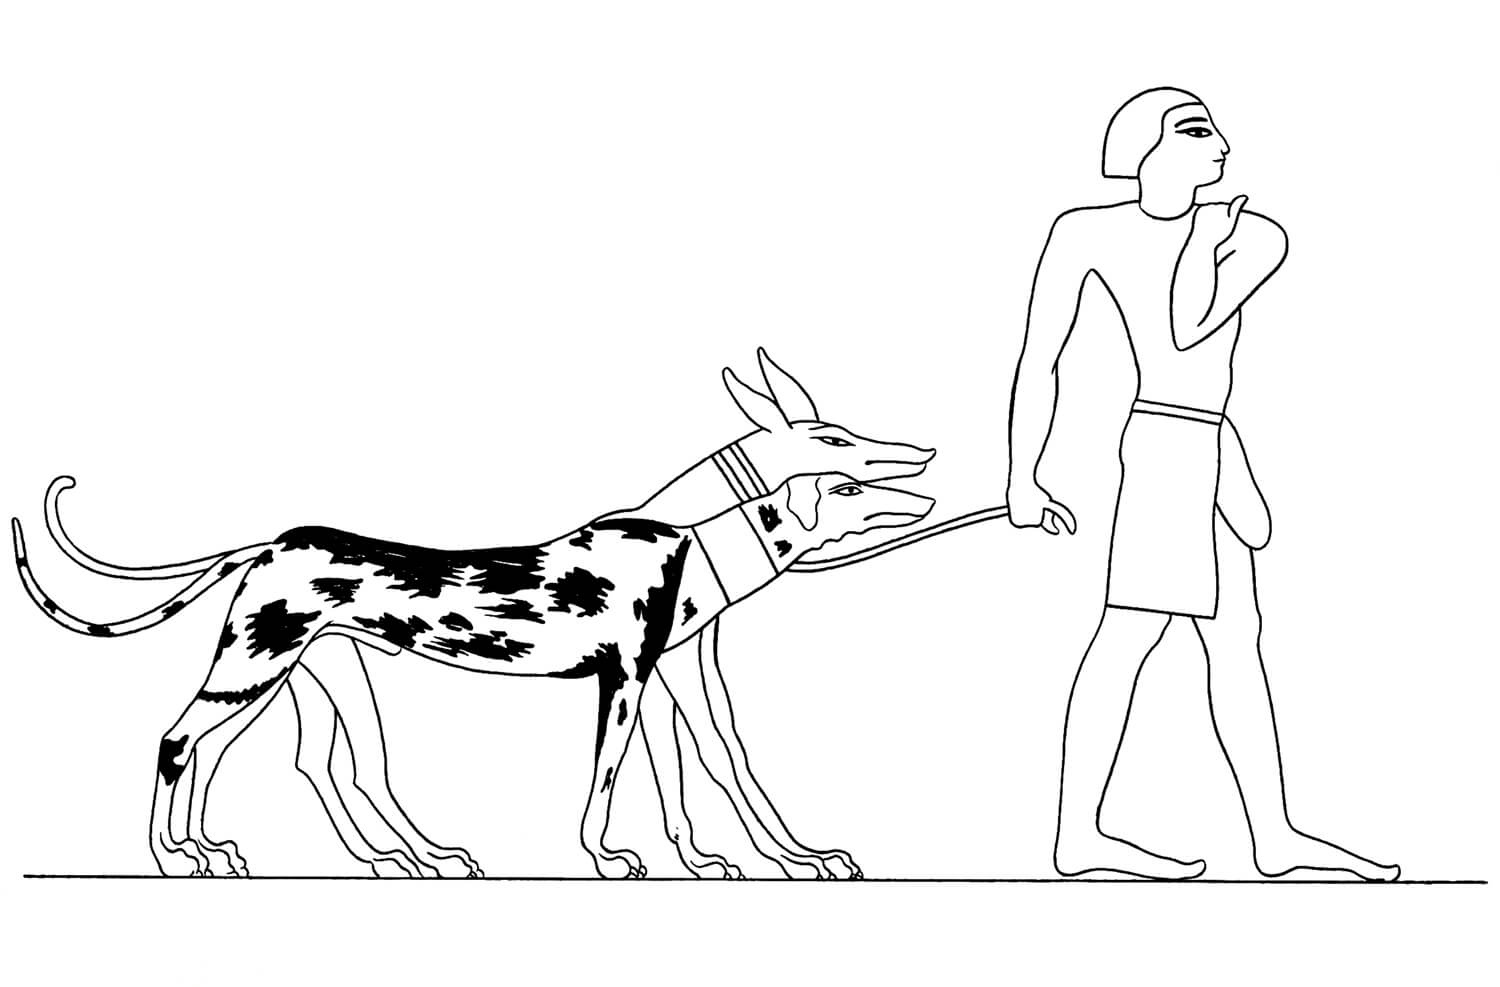 Acient Egyptian and Humans Coloring Page